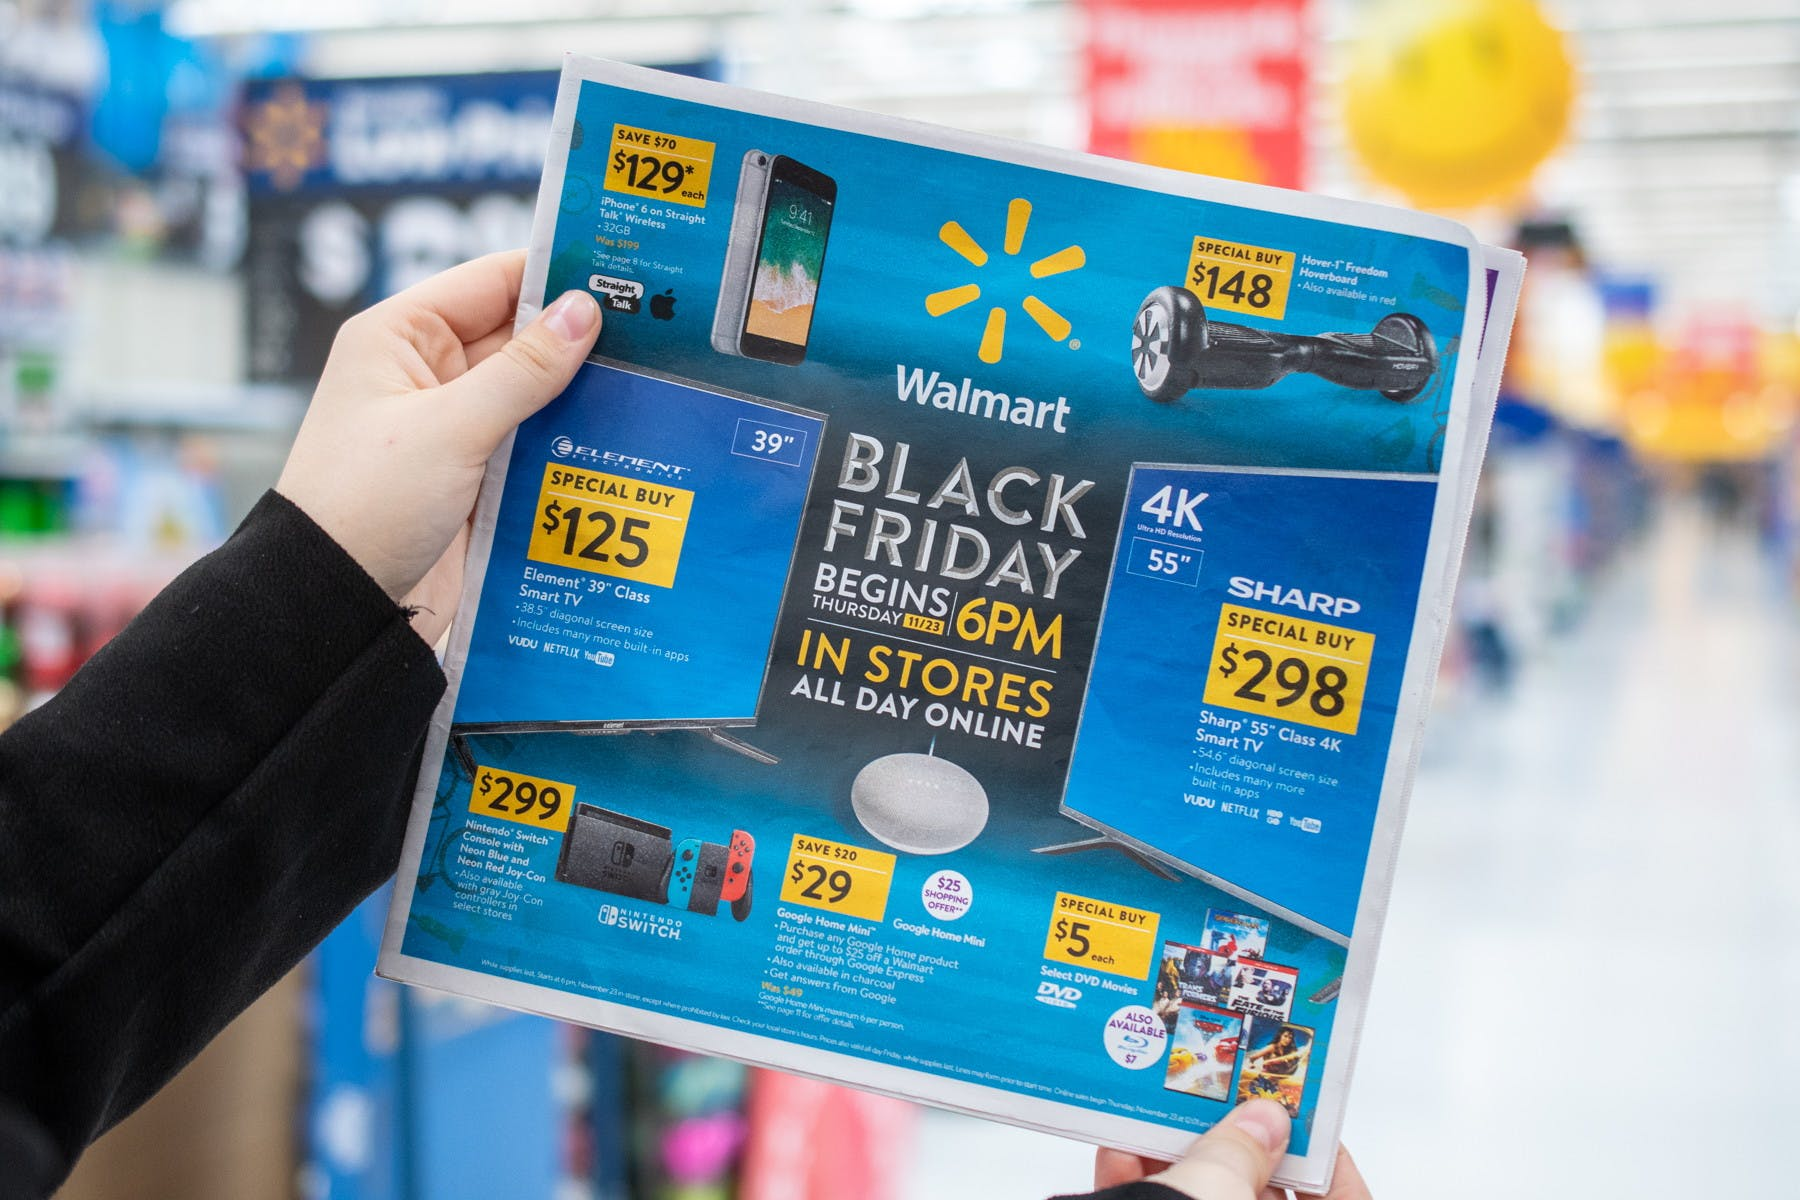 11 Ways To Find The Best Walmart Promo Codes Coupons The Krazy Coupon Lady